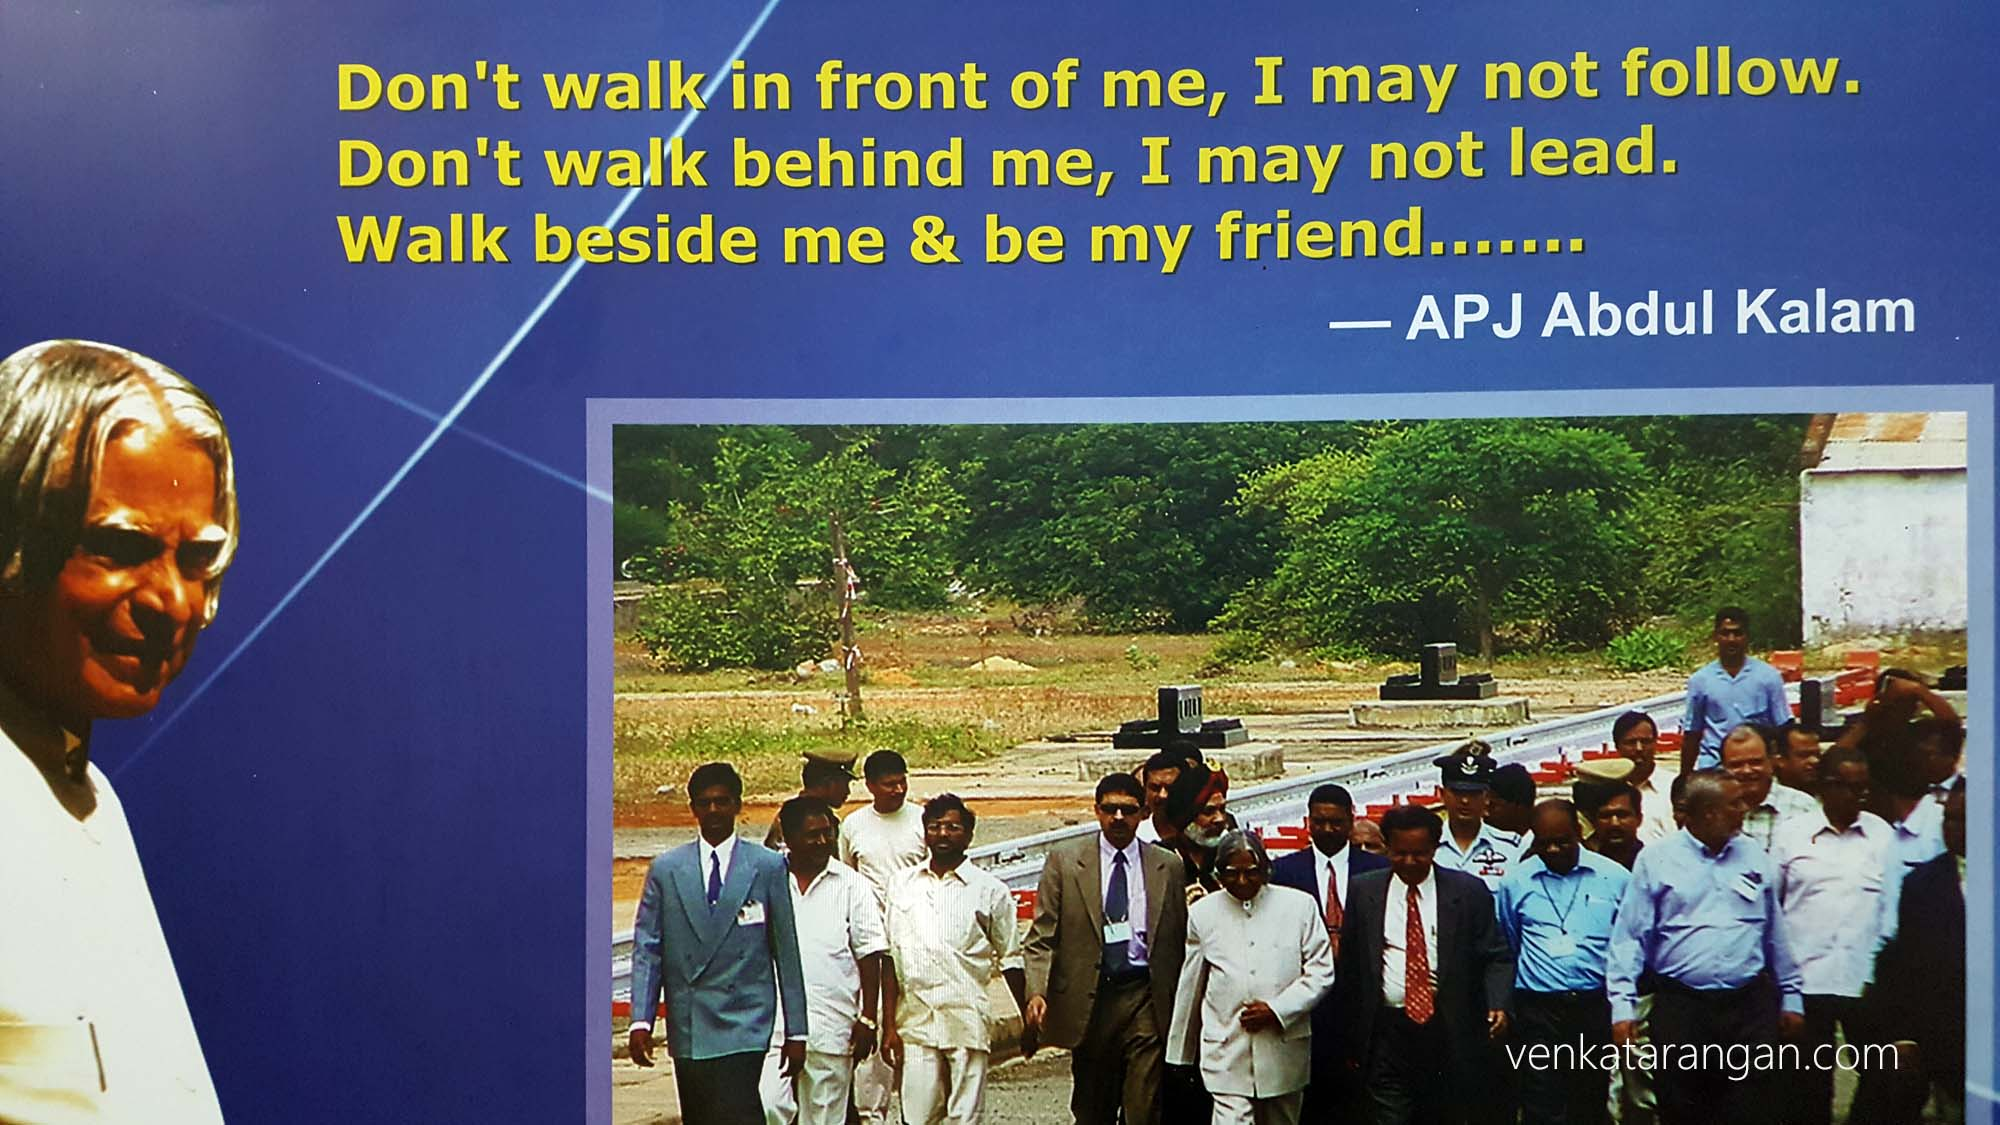 Walk beside me & be my friend - Dr A P J Abdul Kalam